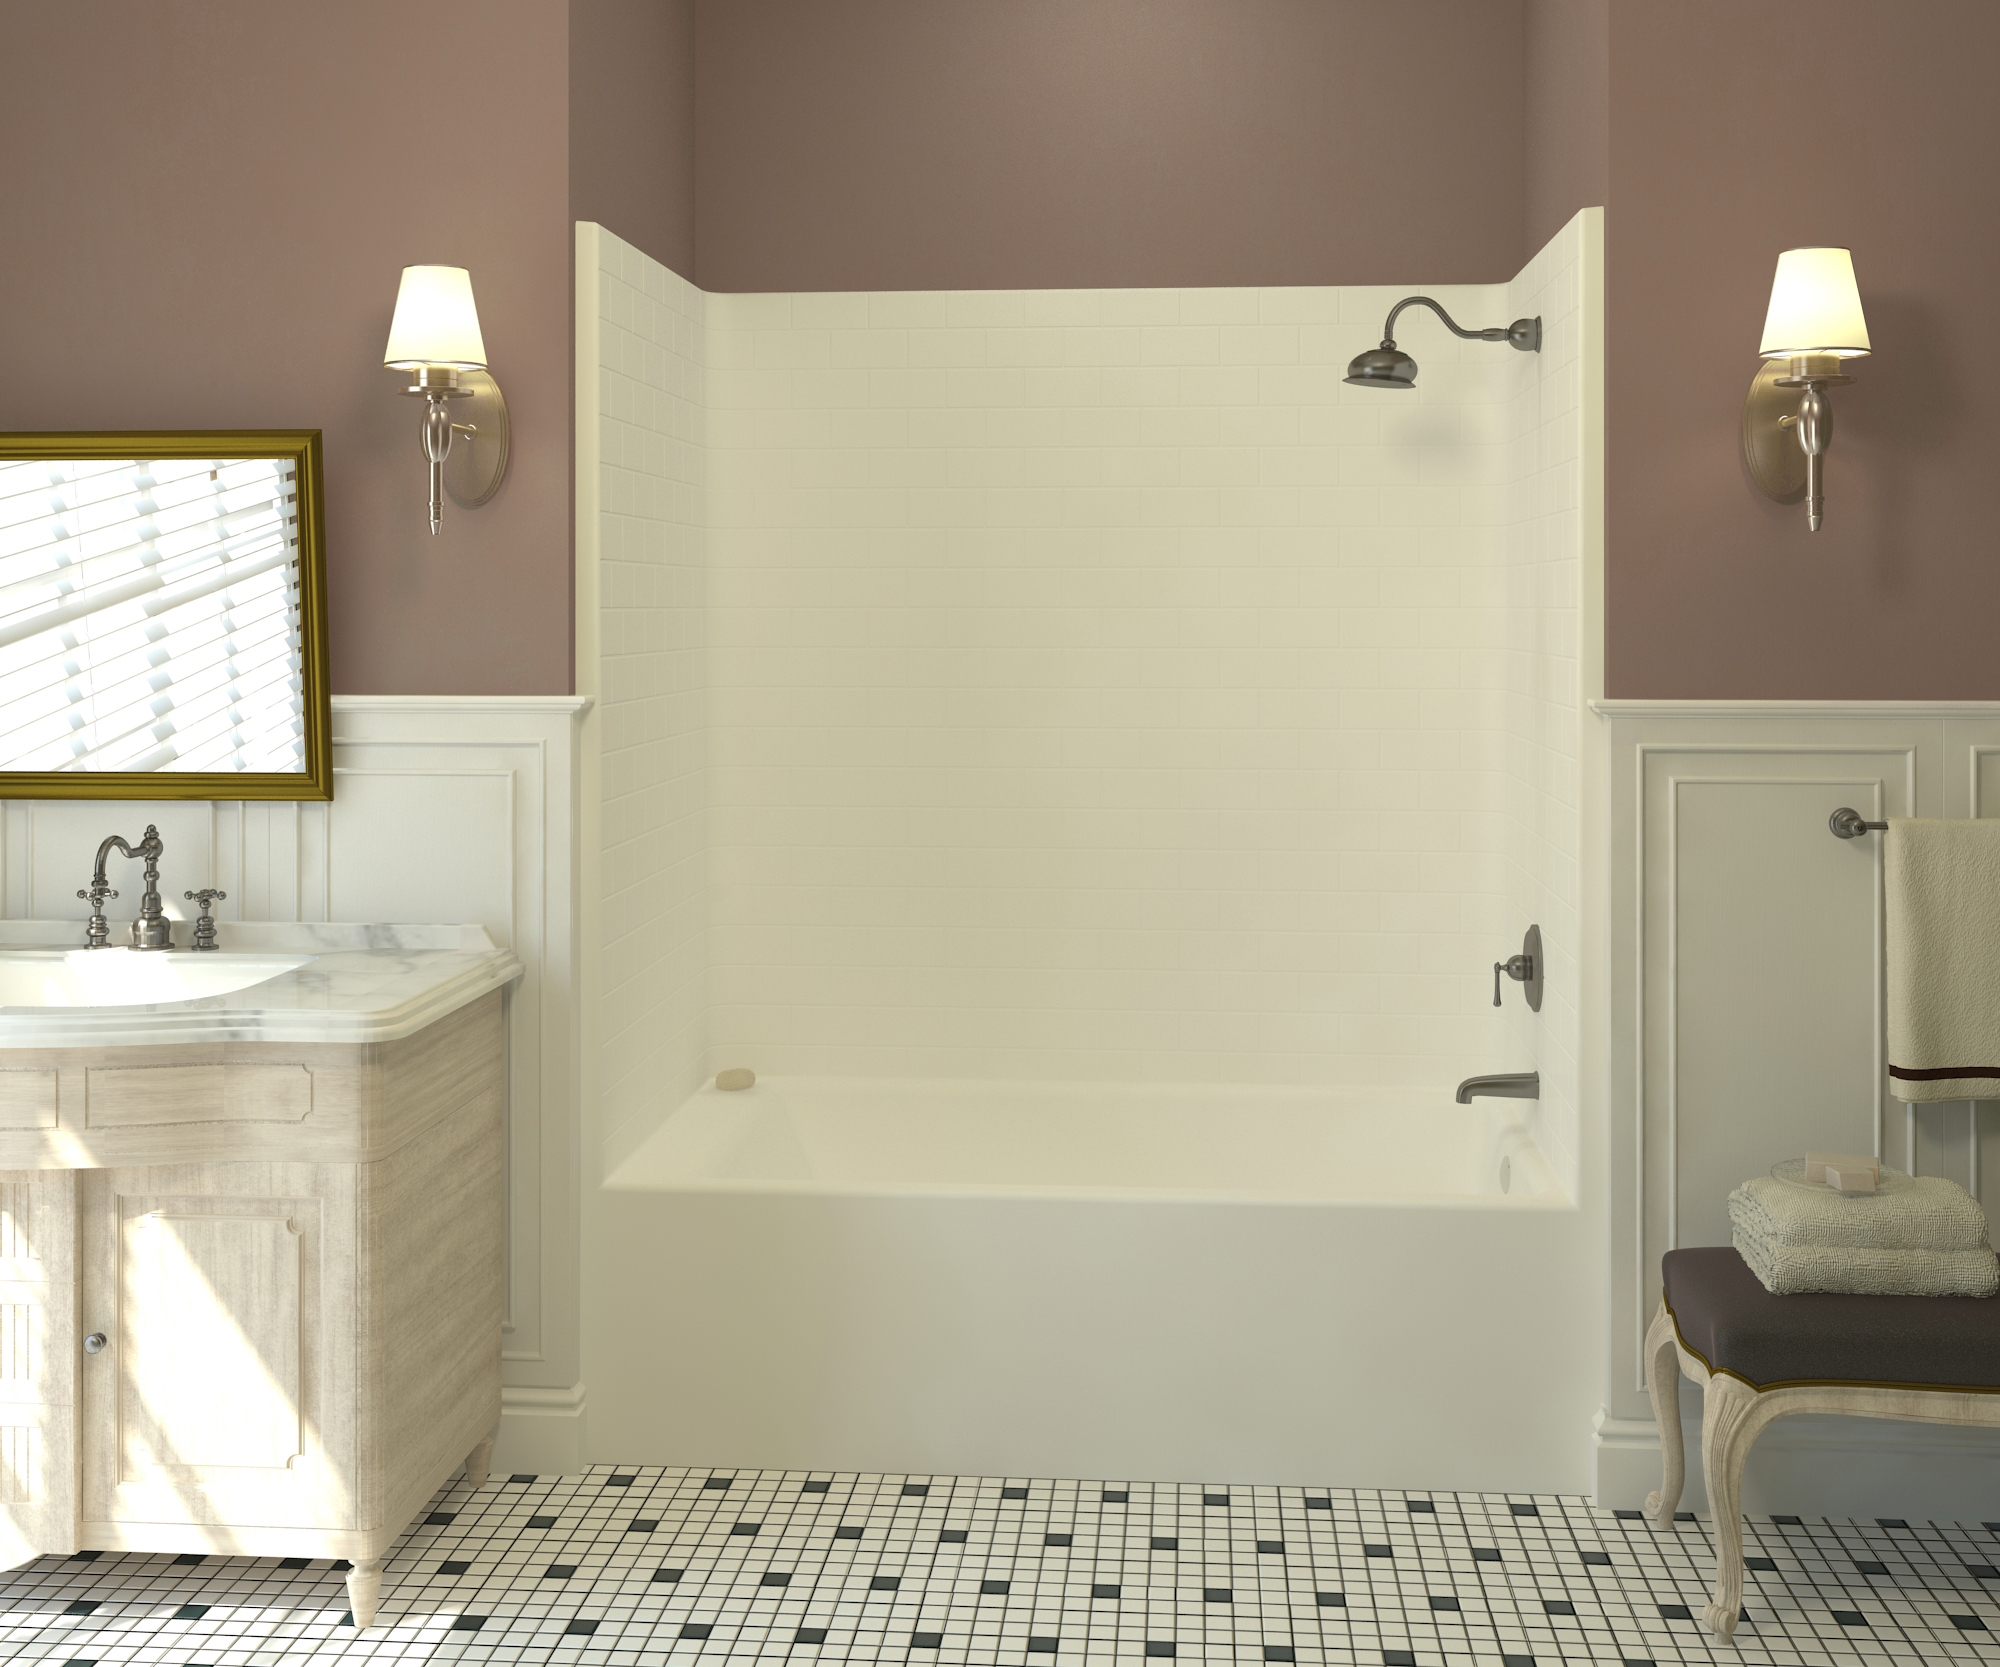 Aquatic S New Subway Tile Family Of Tub Showers And Showers